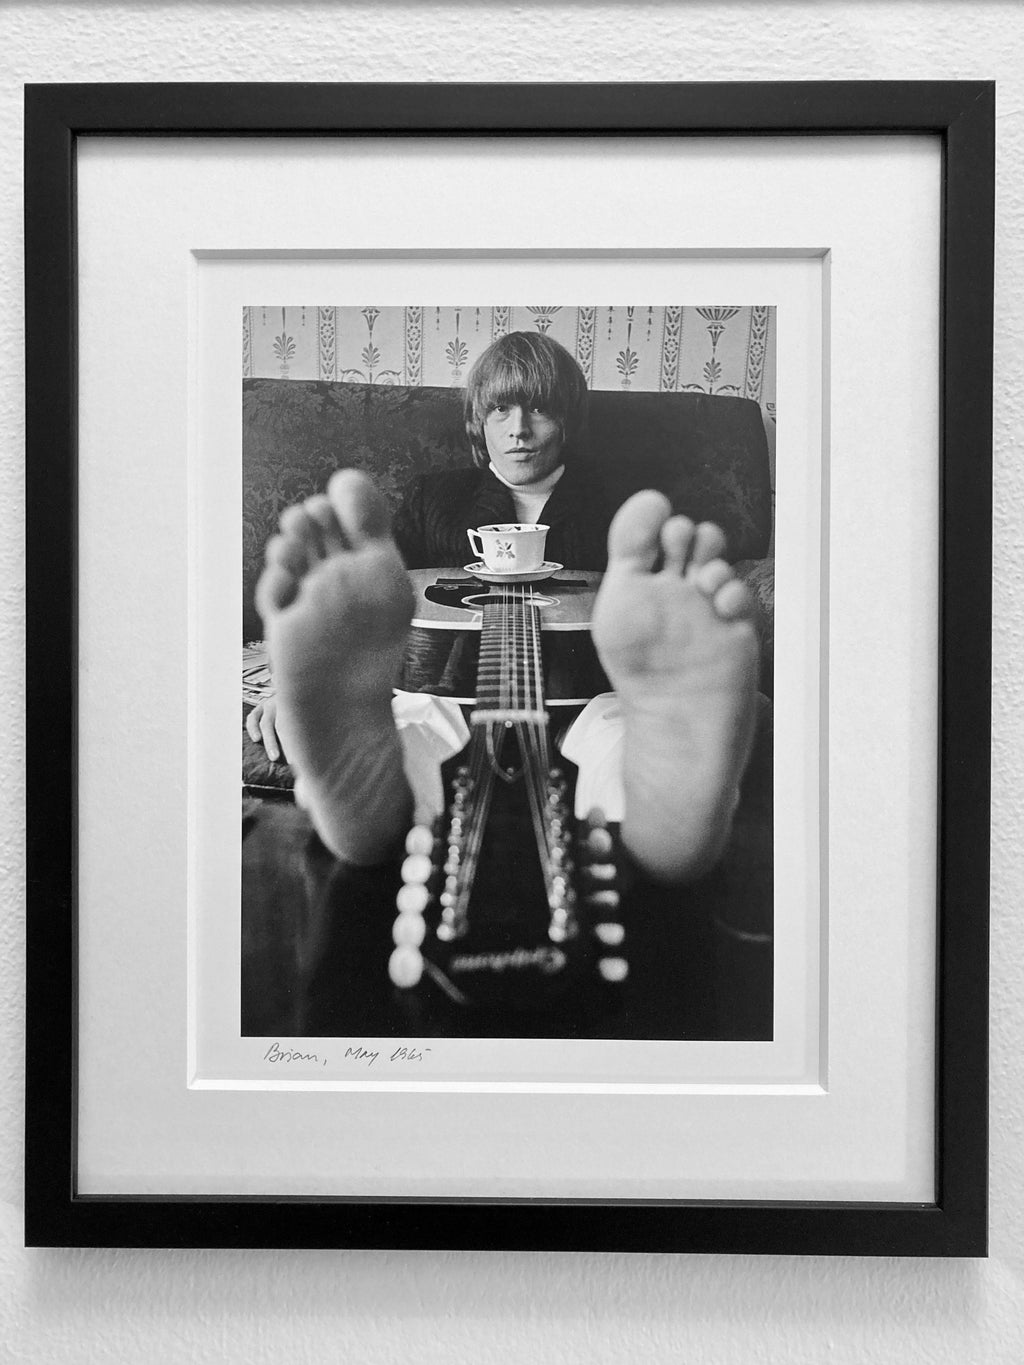 The Rolling Stones - Photo Collection by Photographer Bent Rej Fine-art photography GALLERI.ROCKS